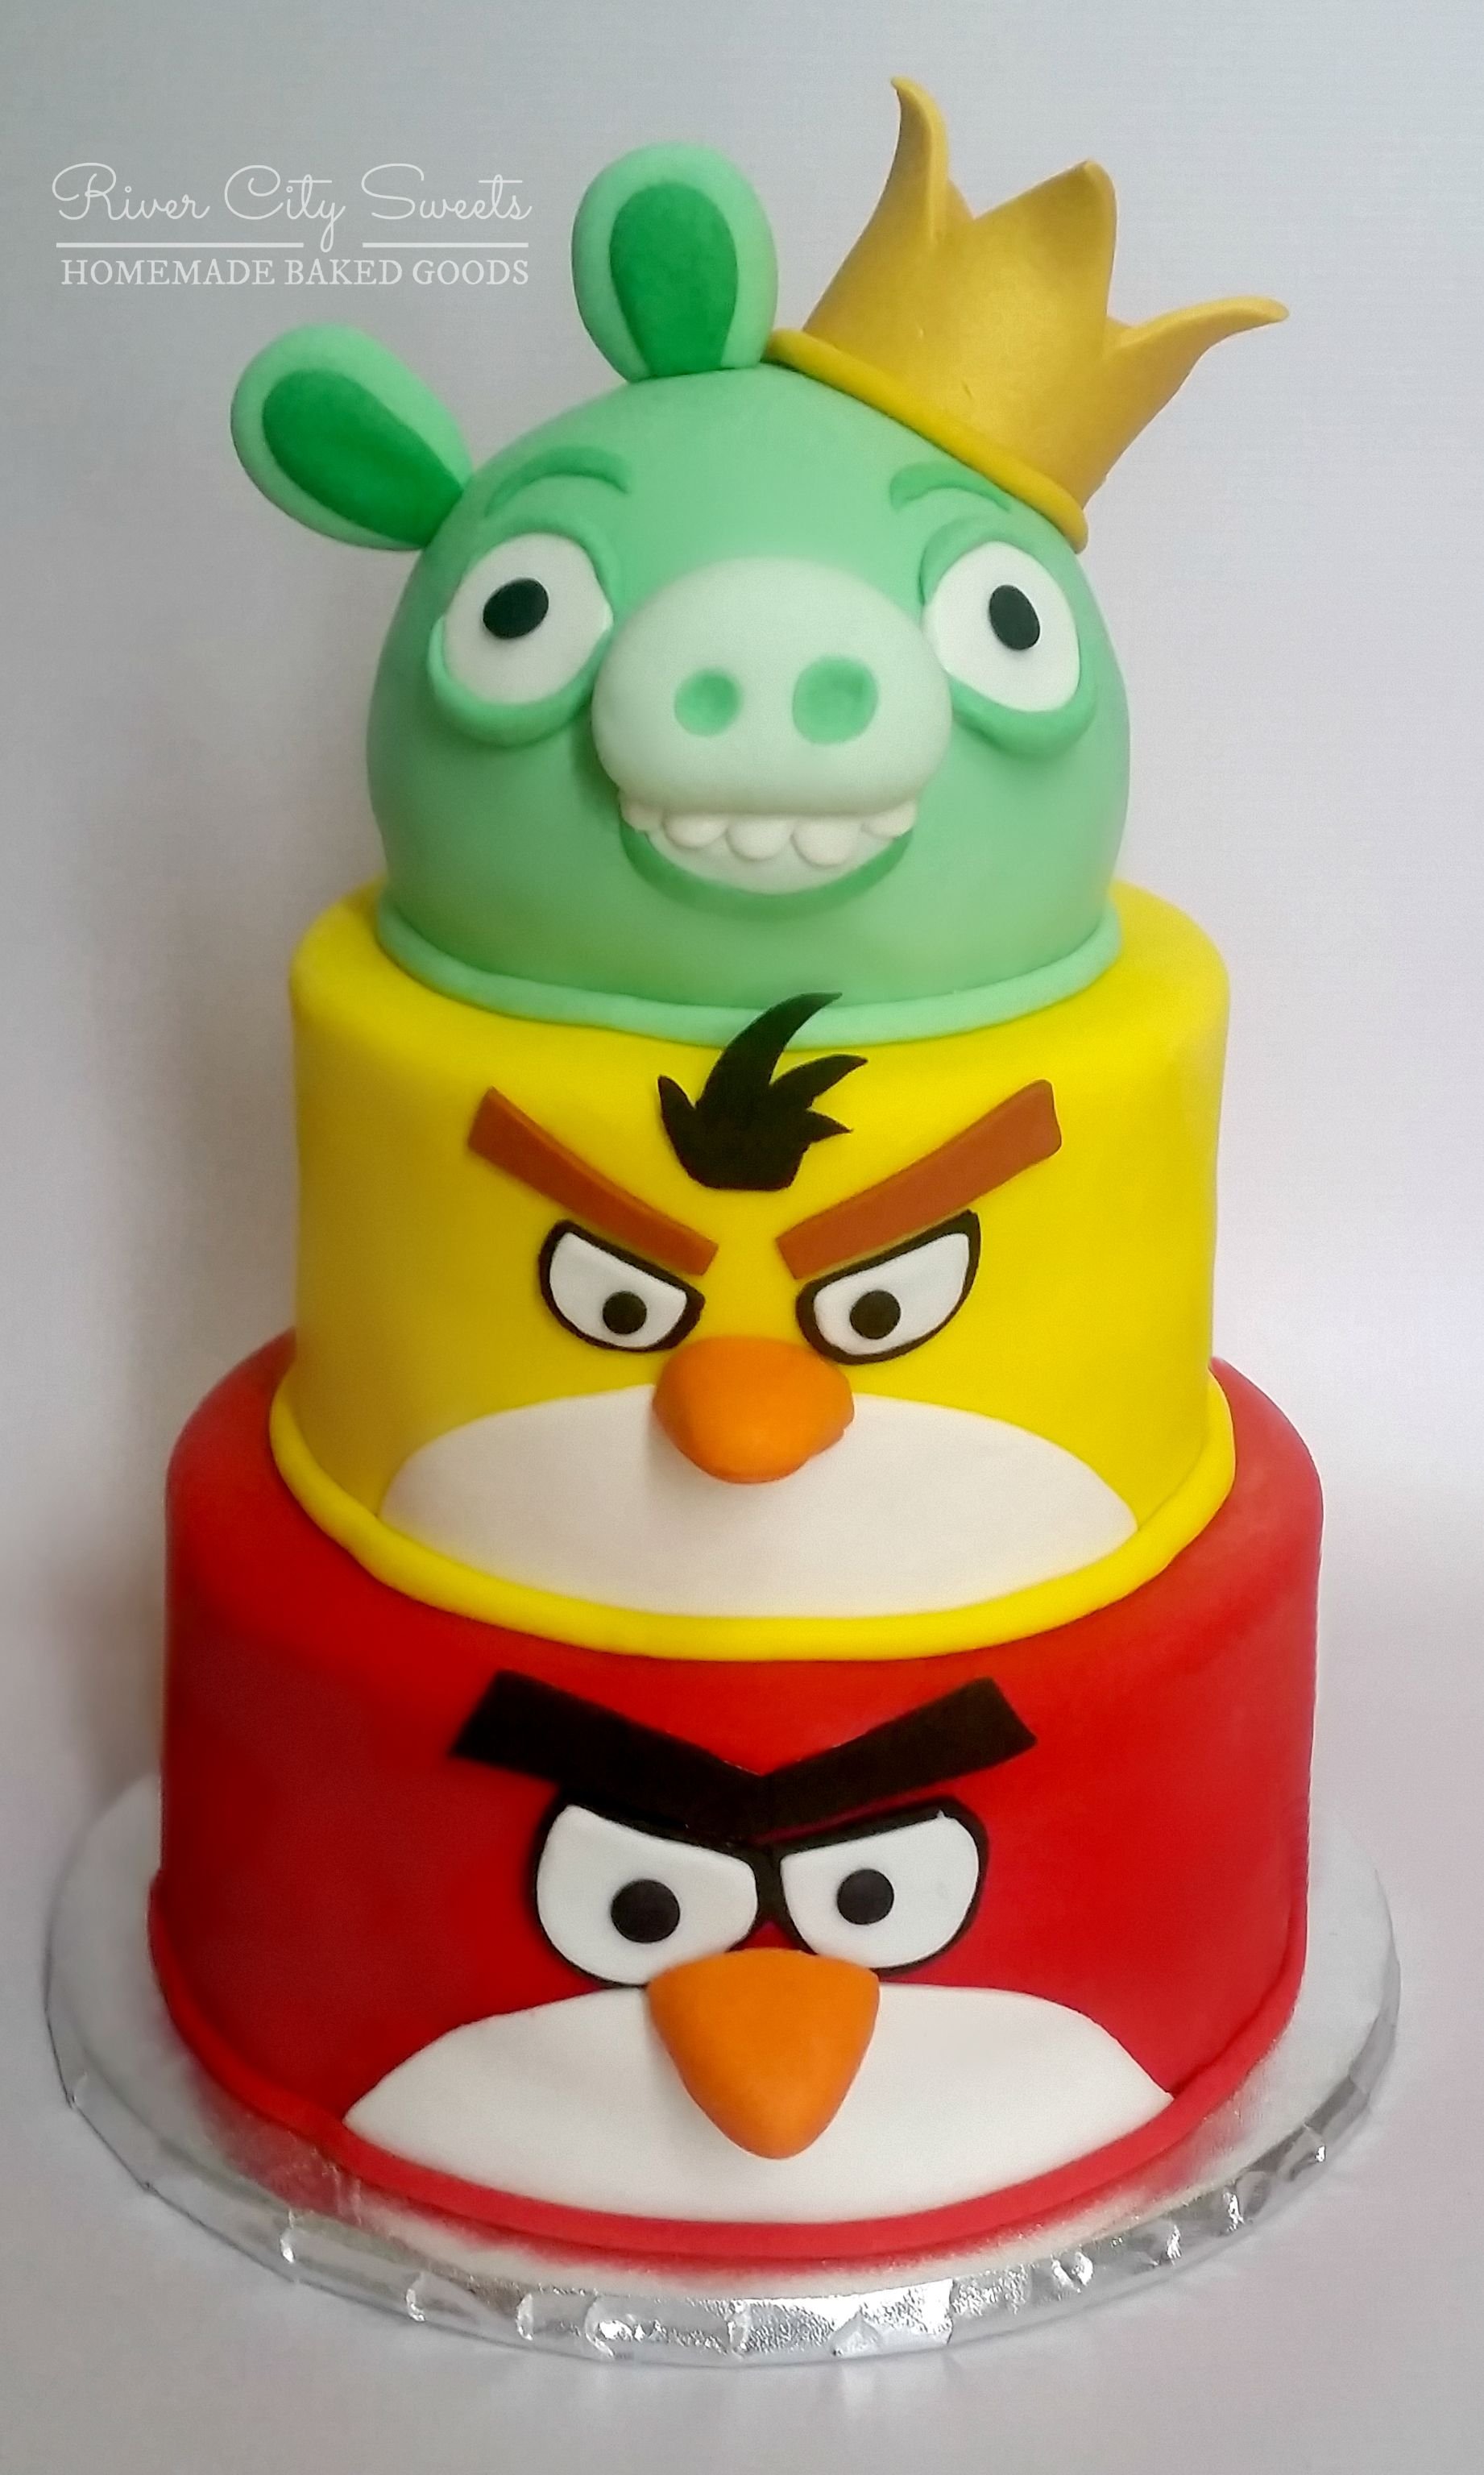 3 Tier Angry Birds Cake By River City Sweets In Richmond Va